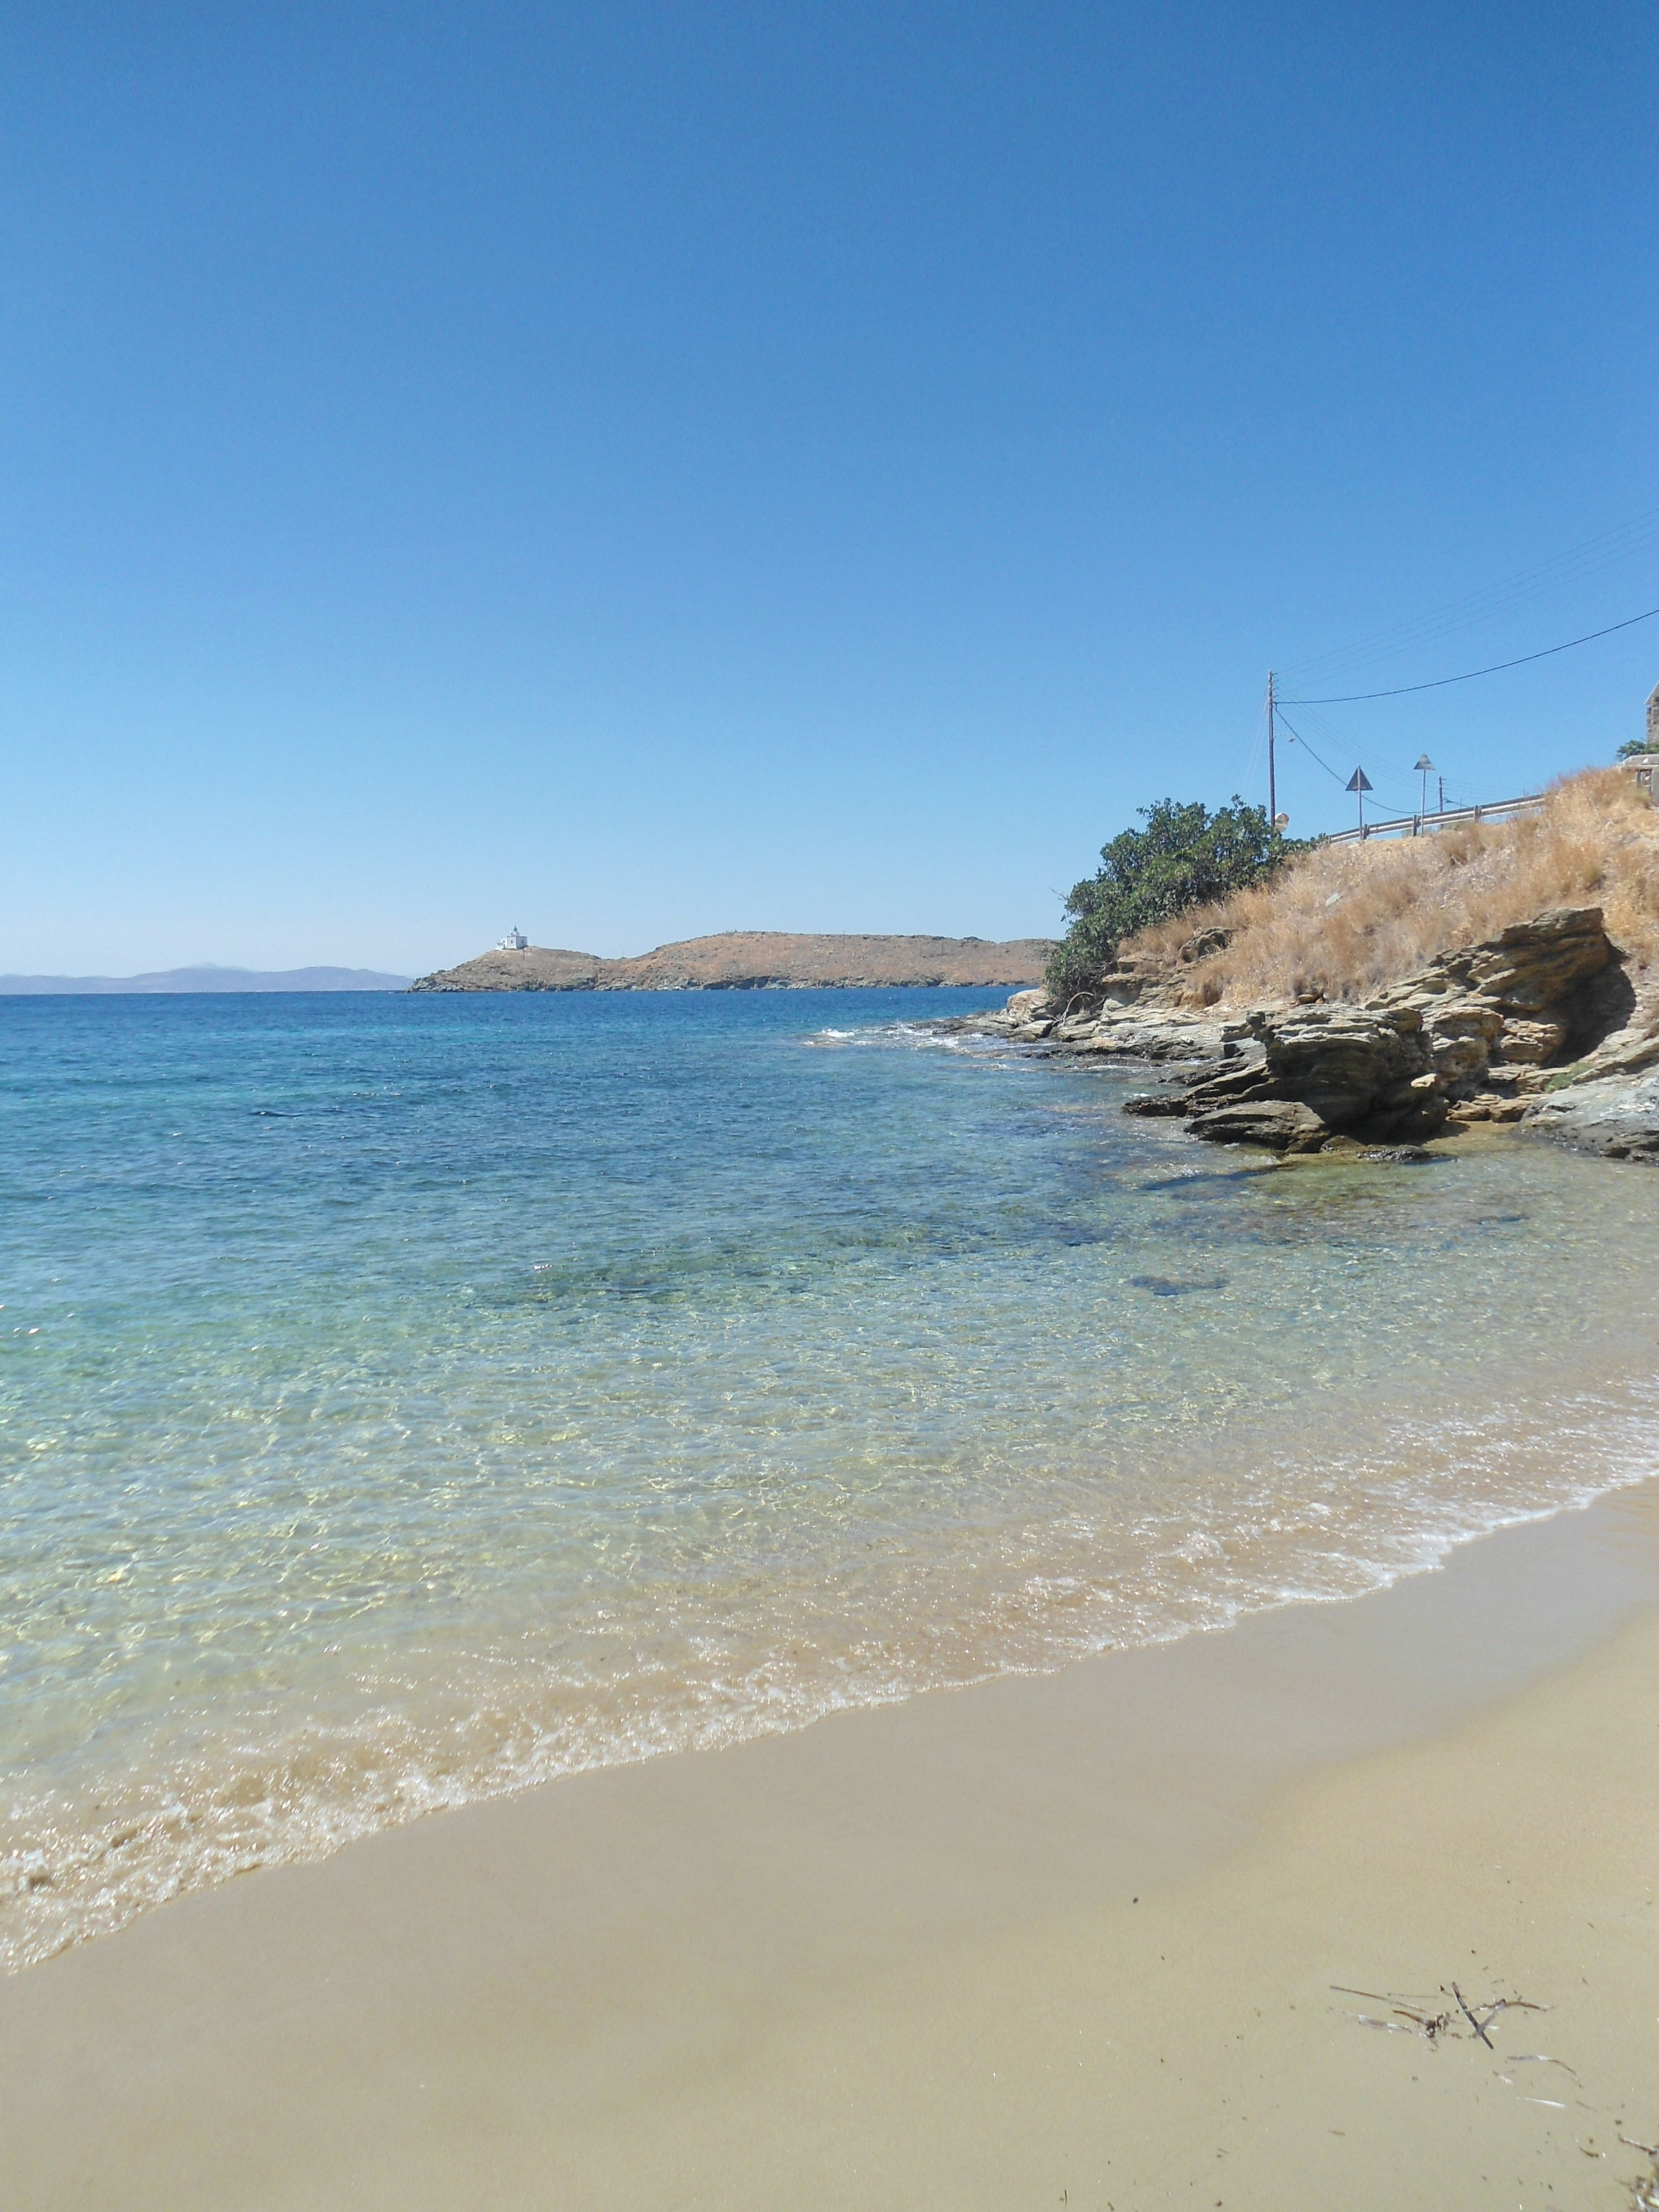 Beach At Kea Island Greece